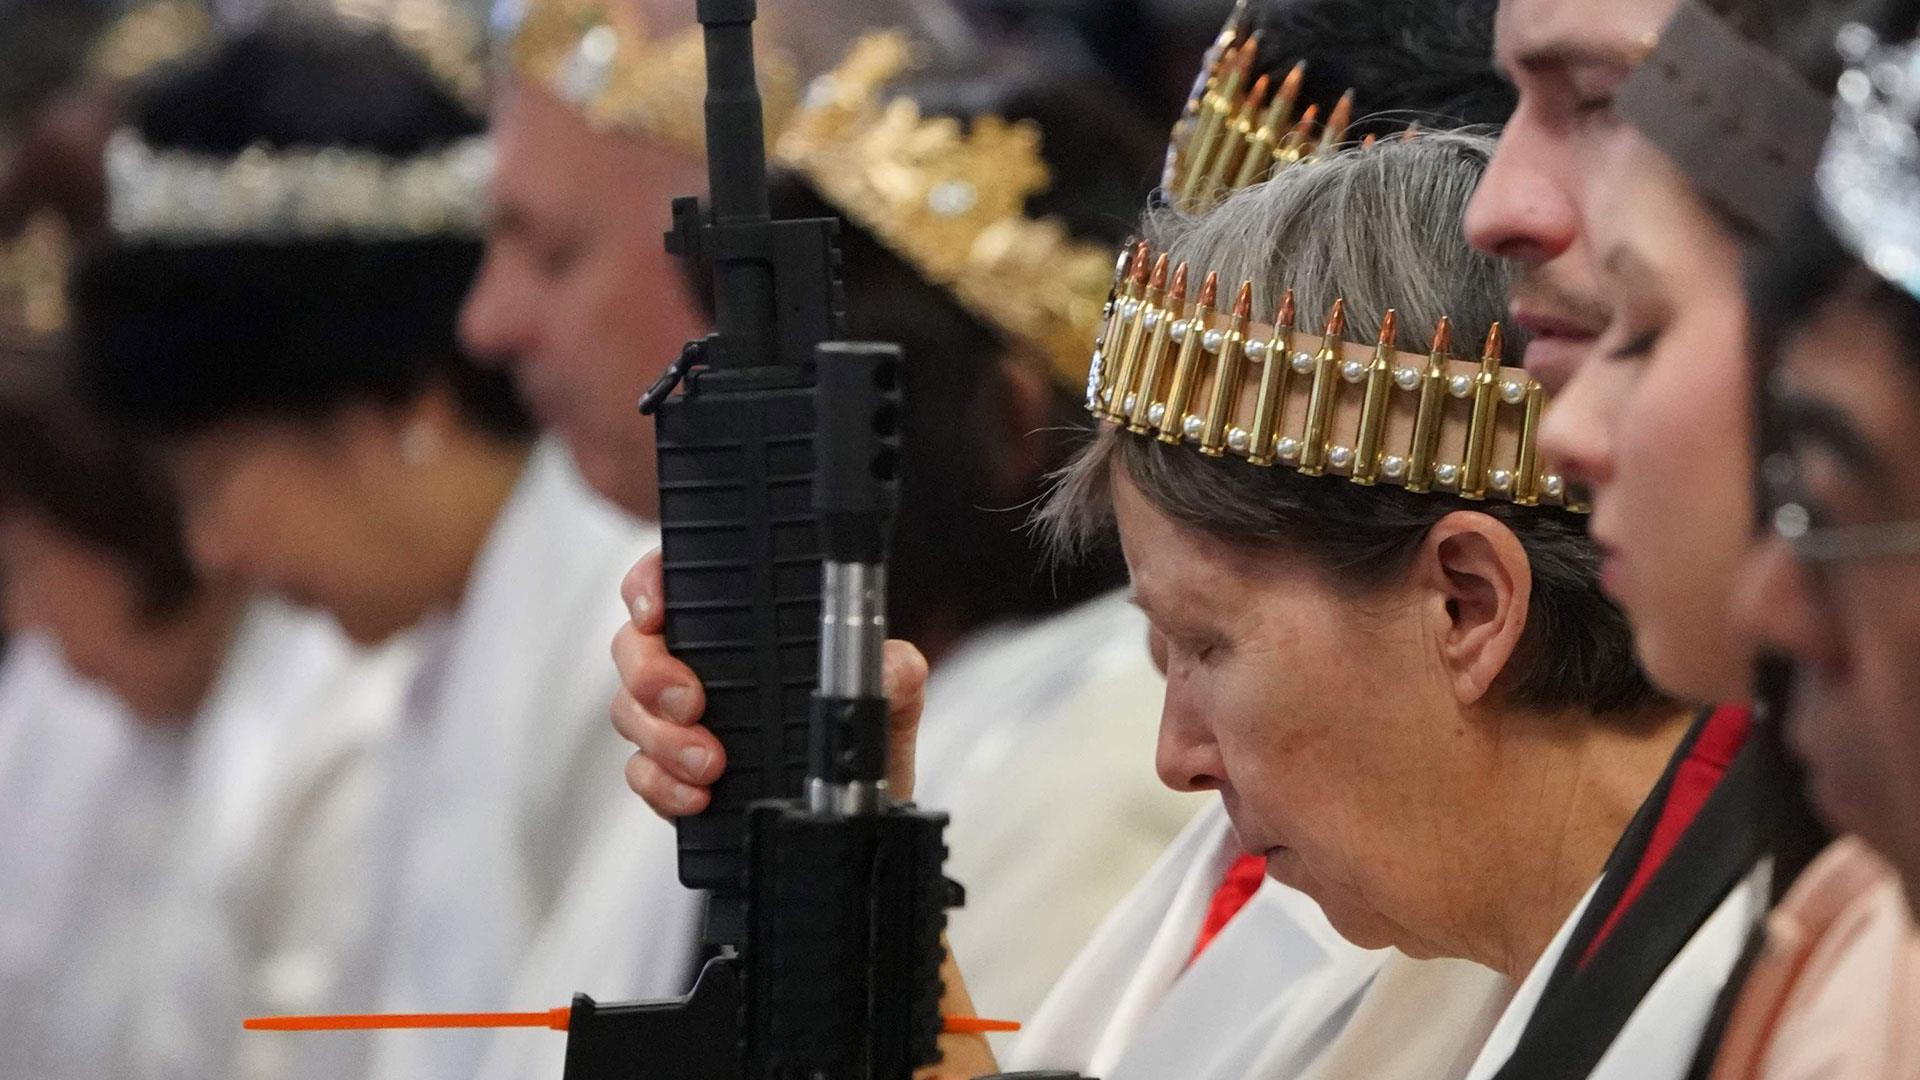 Pennsylvania church blesses AR-15 rifles during commitment ceremony